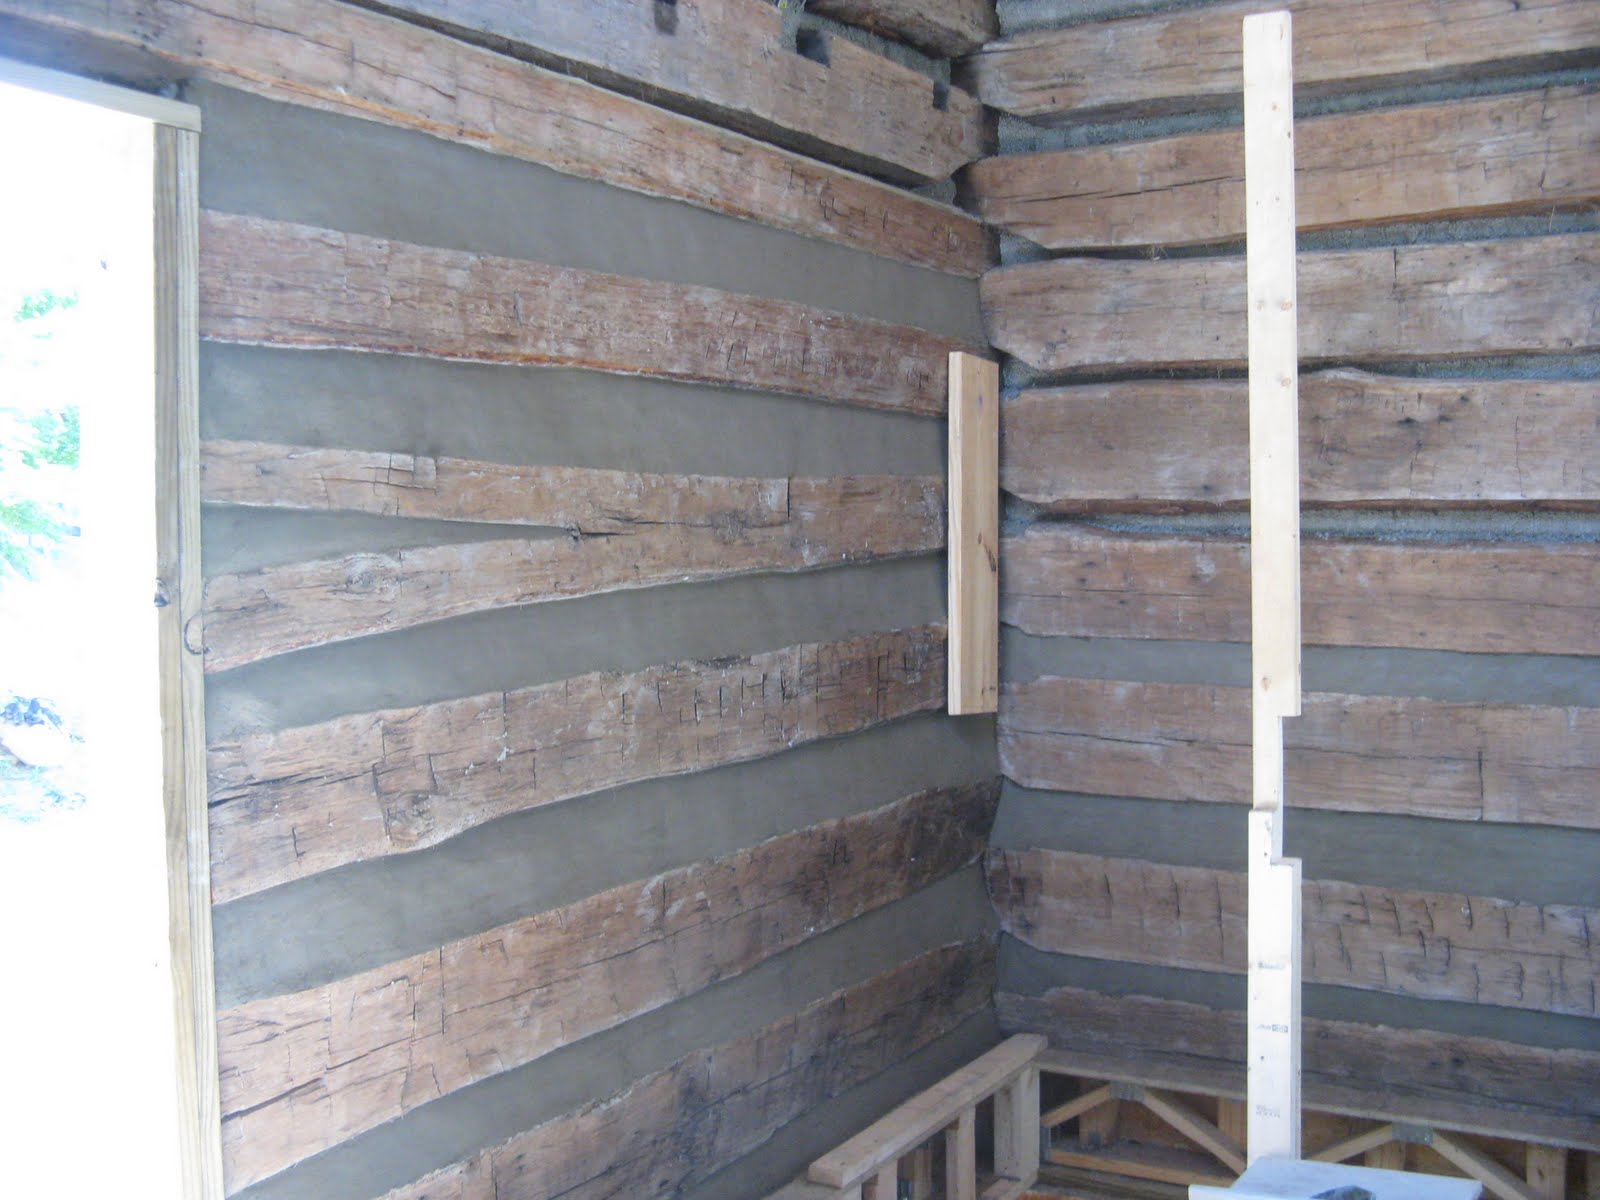 Old Log Cabin Revival: Inside Chinking and Framing in the Gable